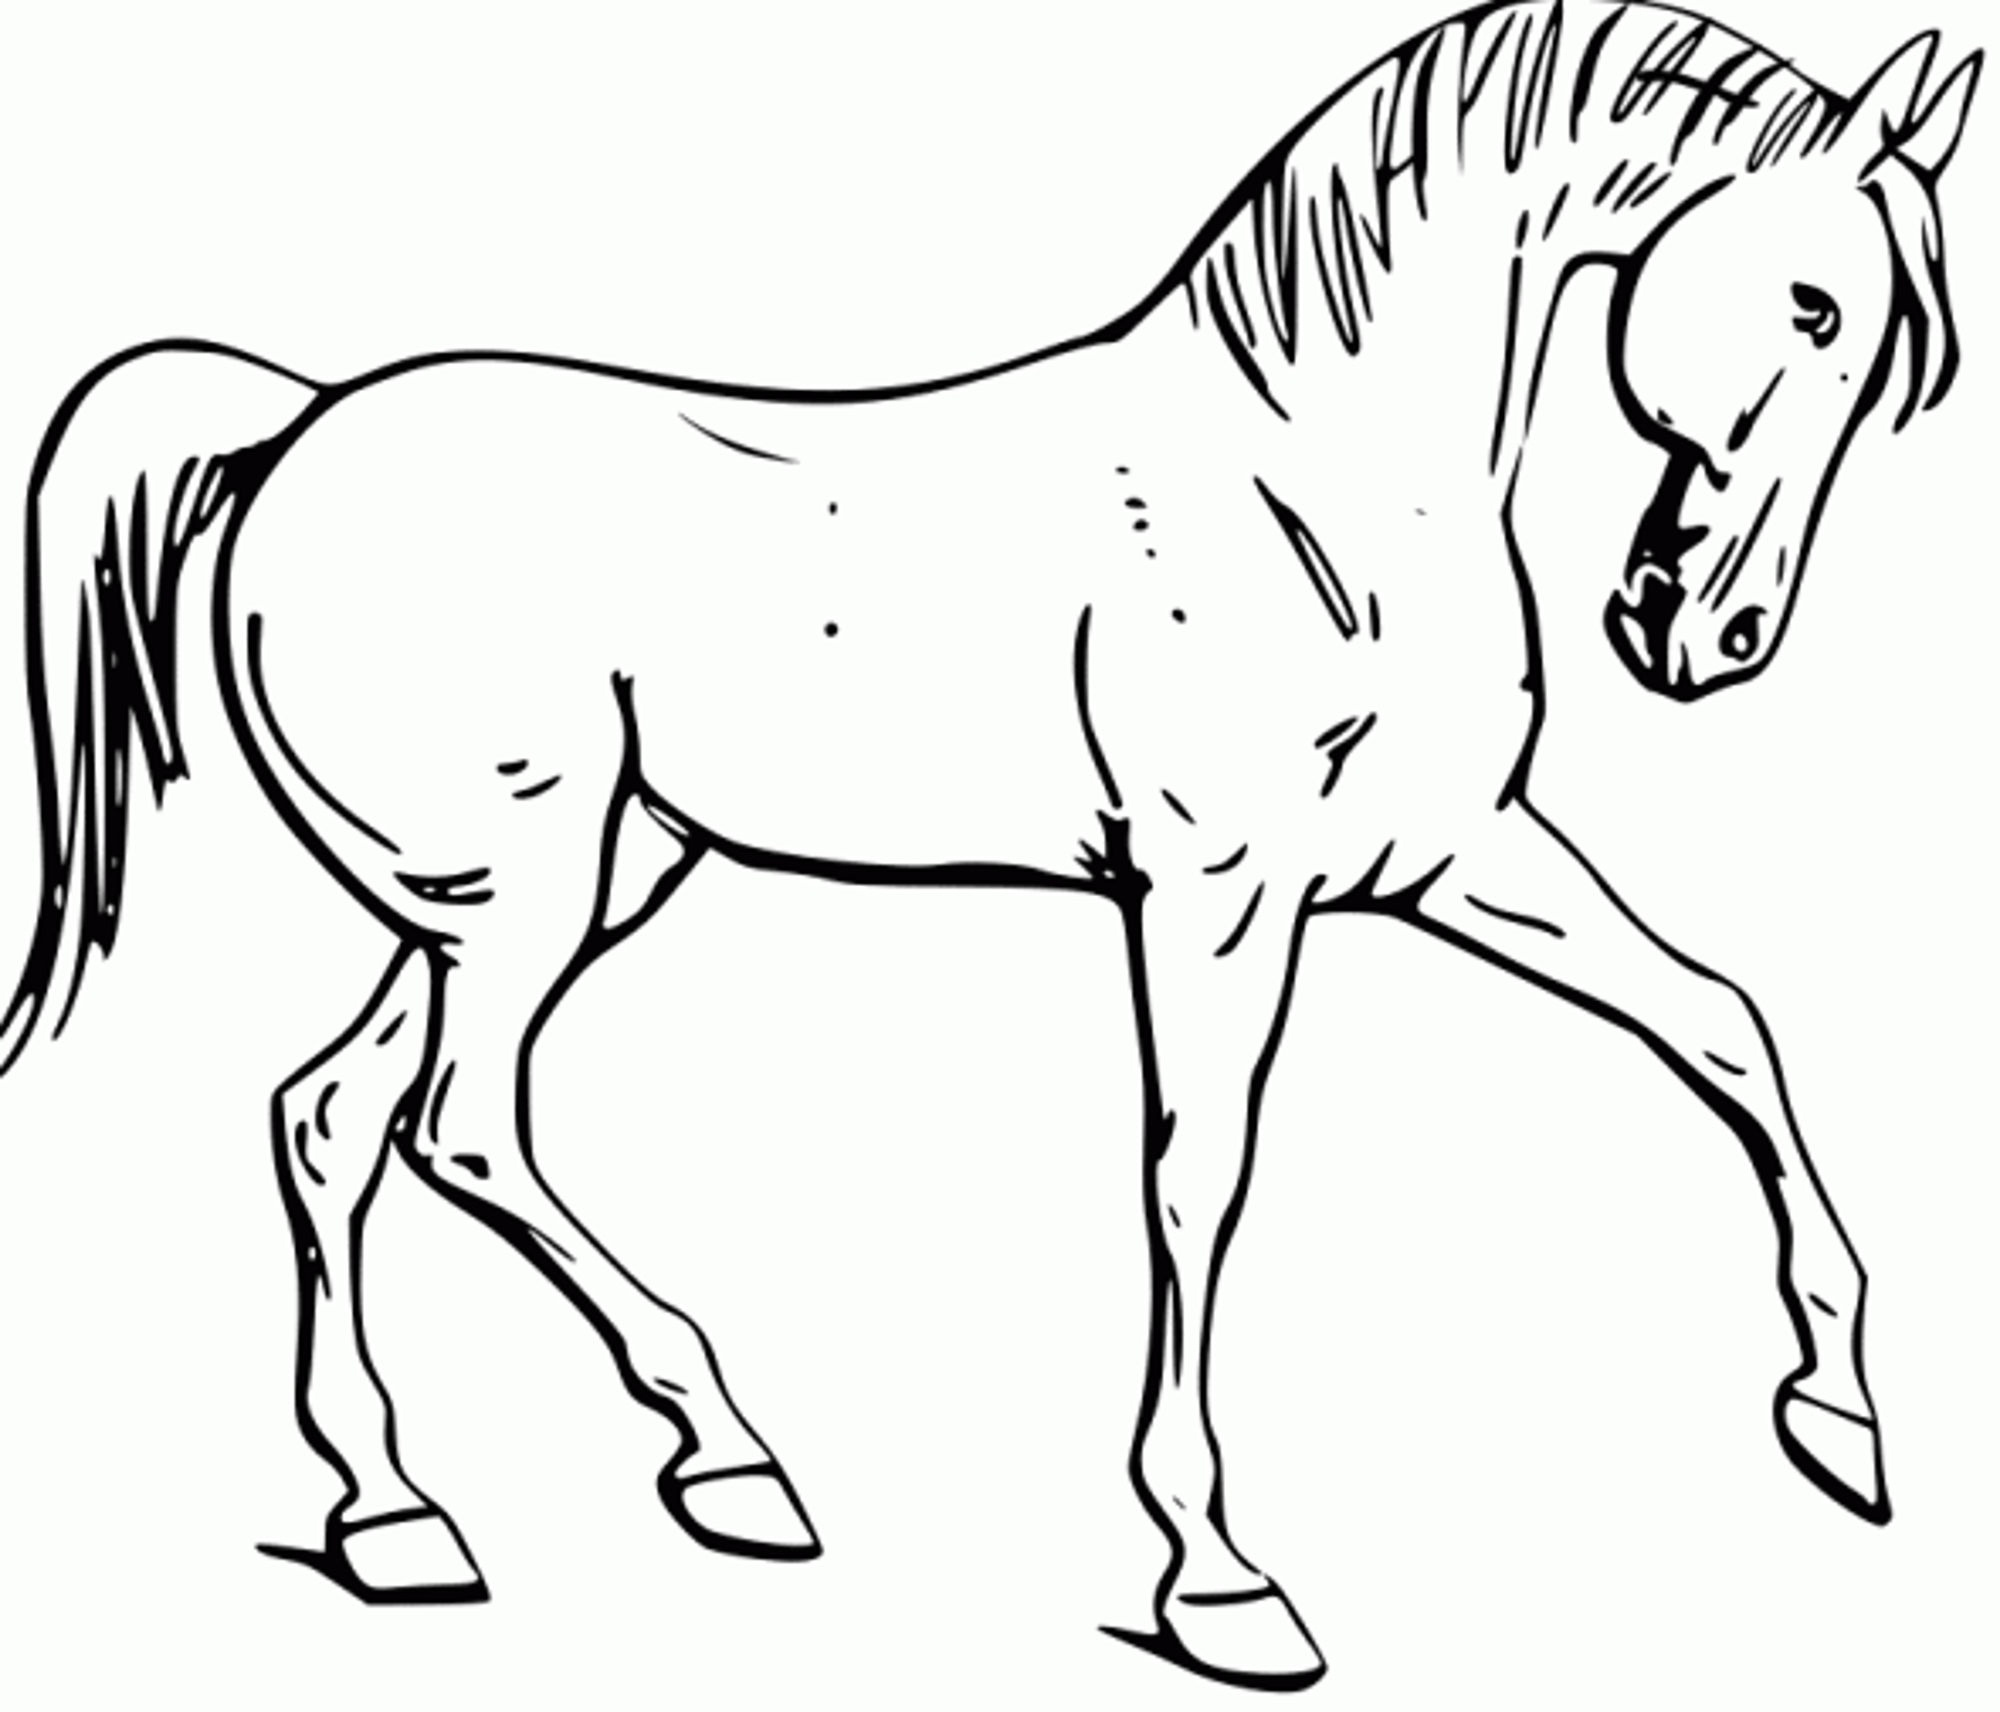 Fun Horse Coloring Pages For Your Kids Printable - Free Printable Horse Coloring Pages